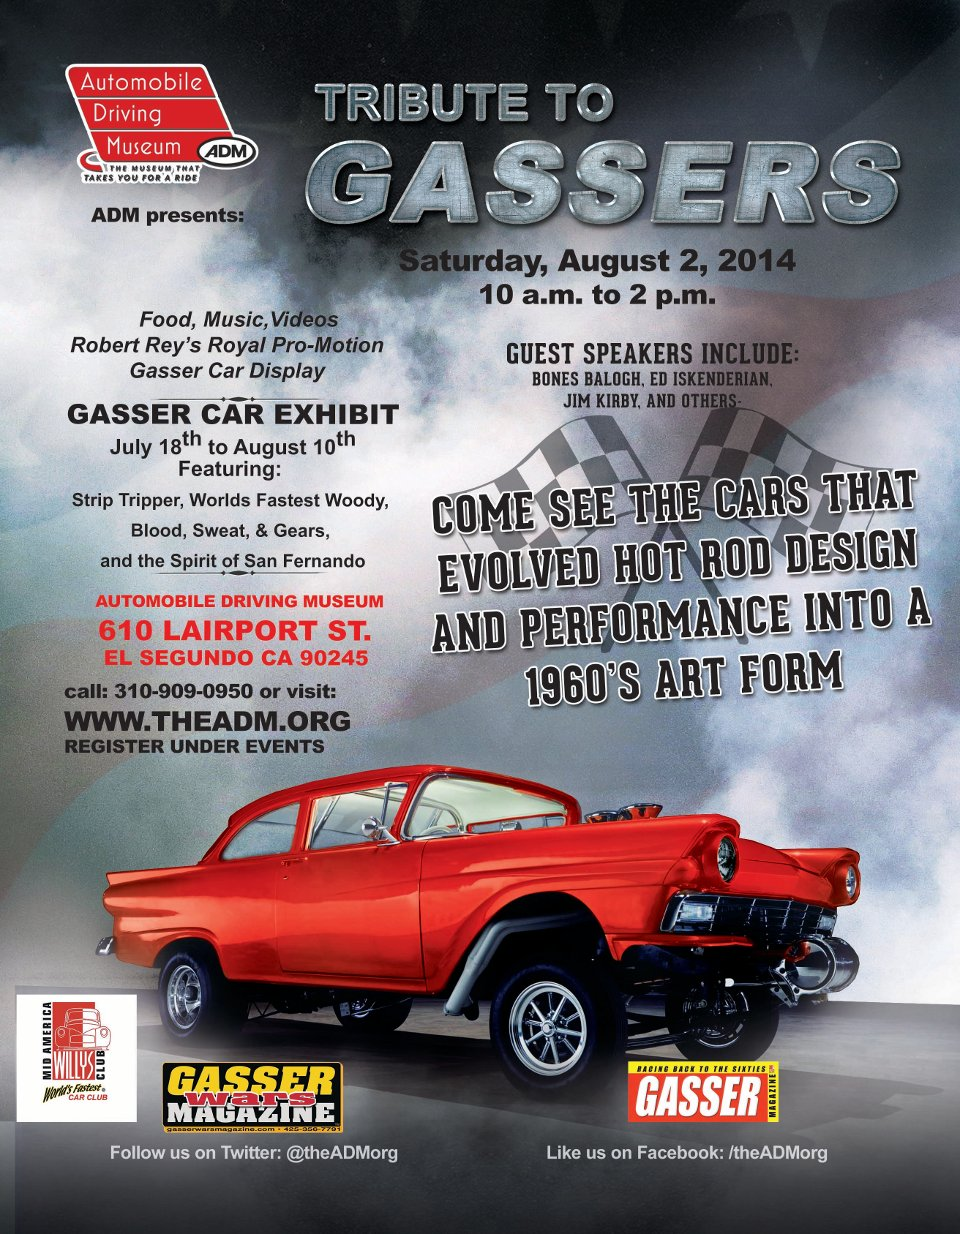 2014 Automobile Driving Museum Events